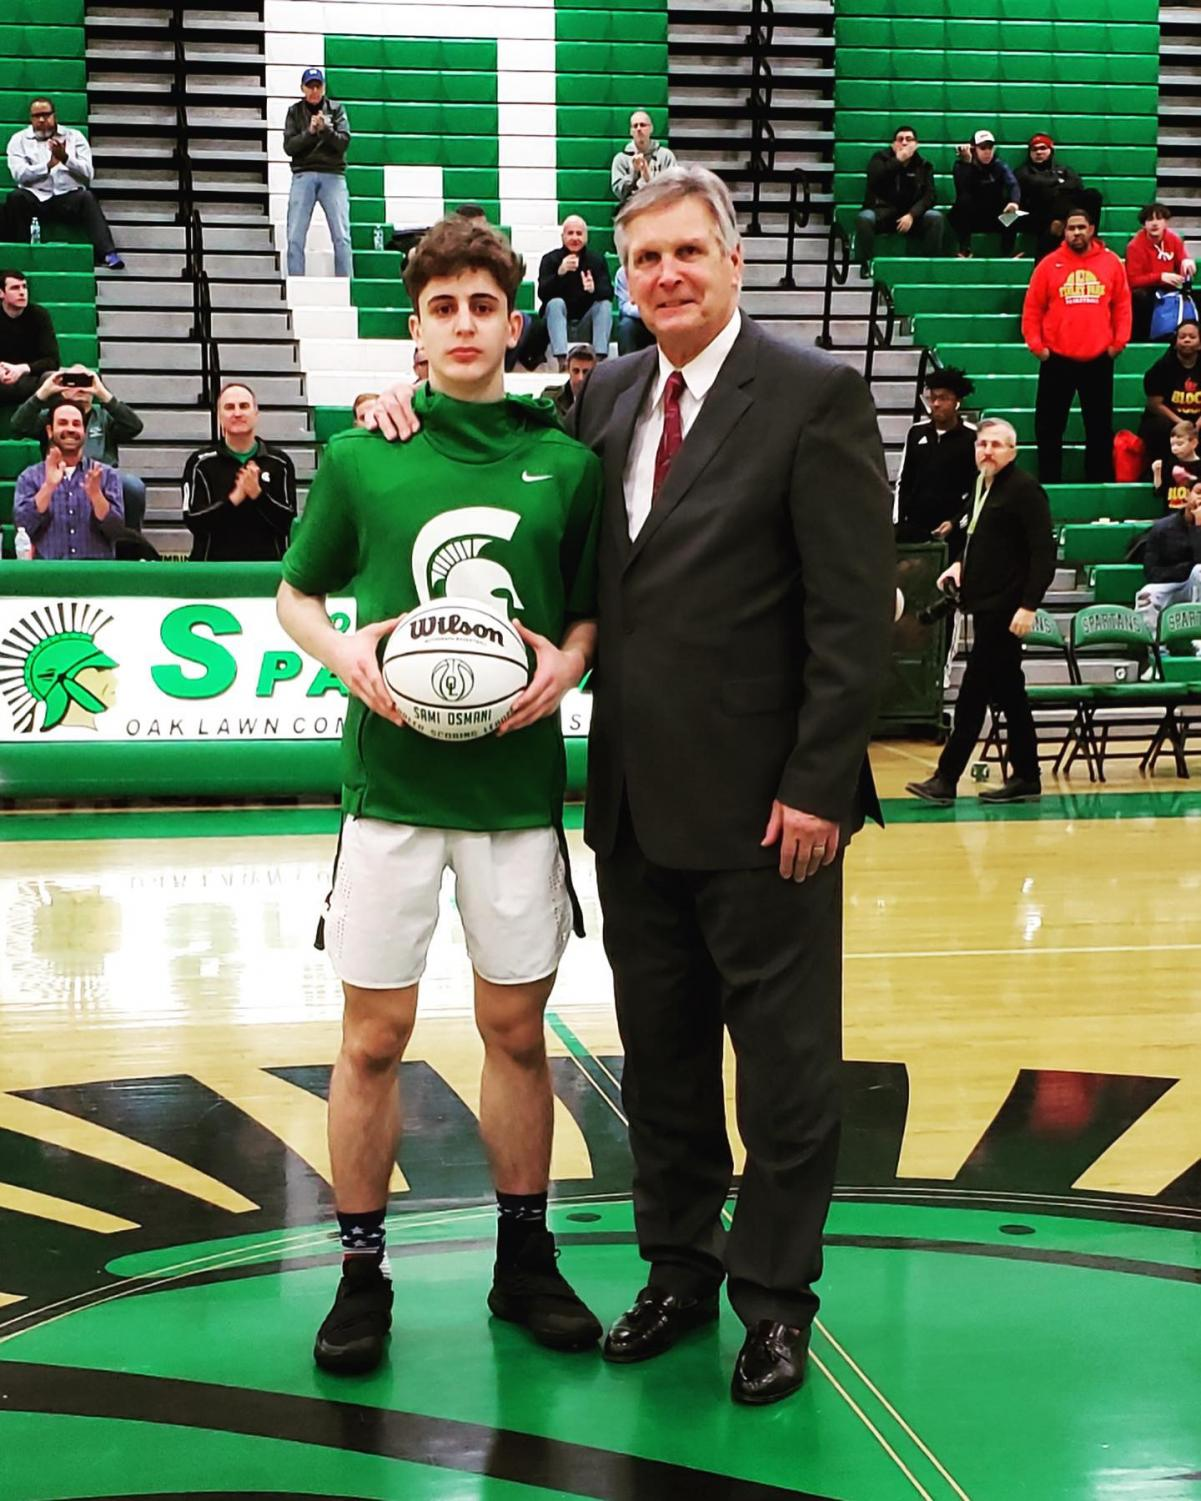 Senior point guard, Sami Osmani, being commemorated by former NBA player CJ Kupec. Sami surpassed Kupec's scoring record of 1,377 points in a landslide victory over Bremen High School.